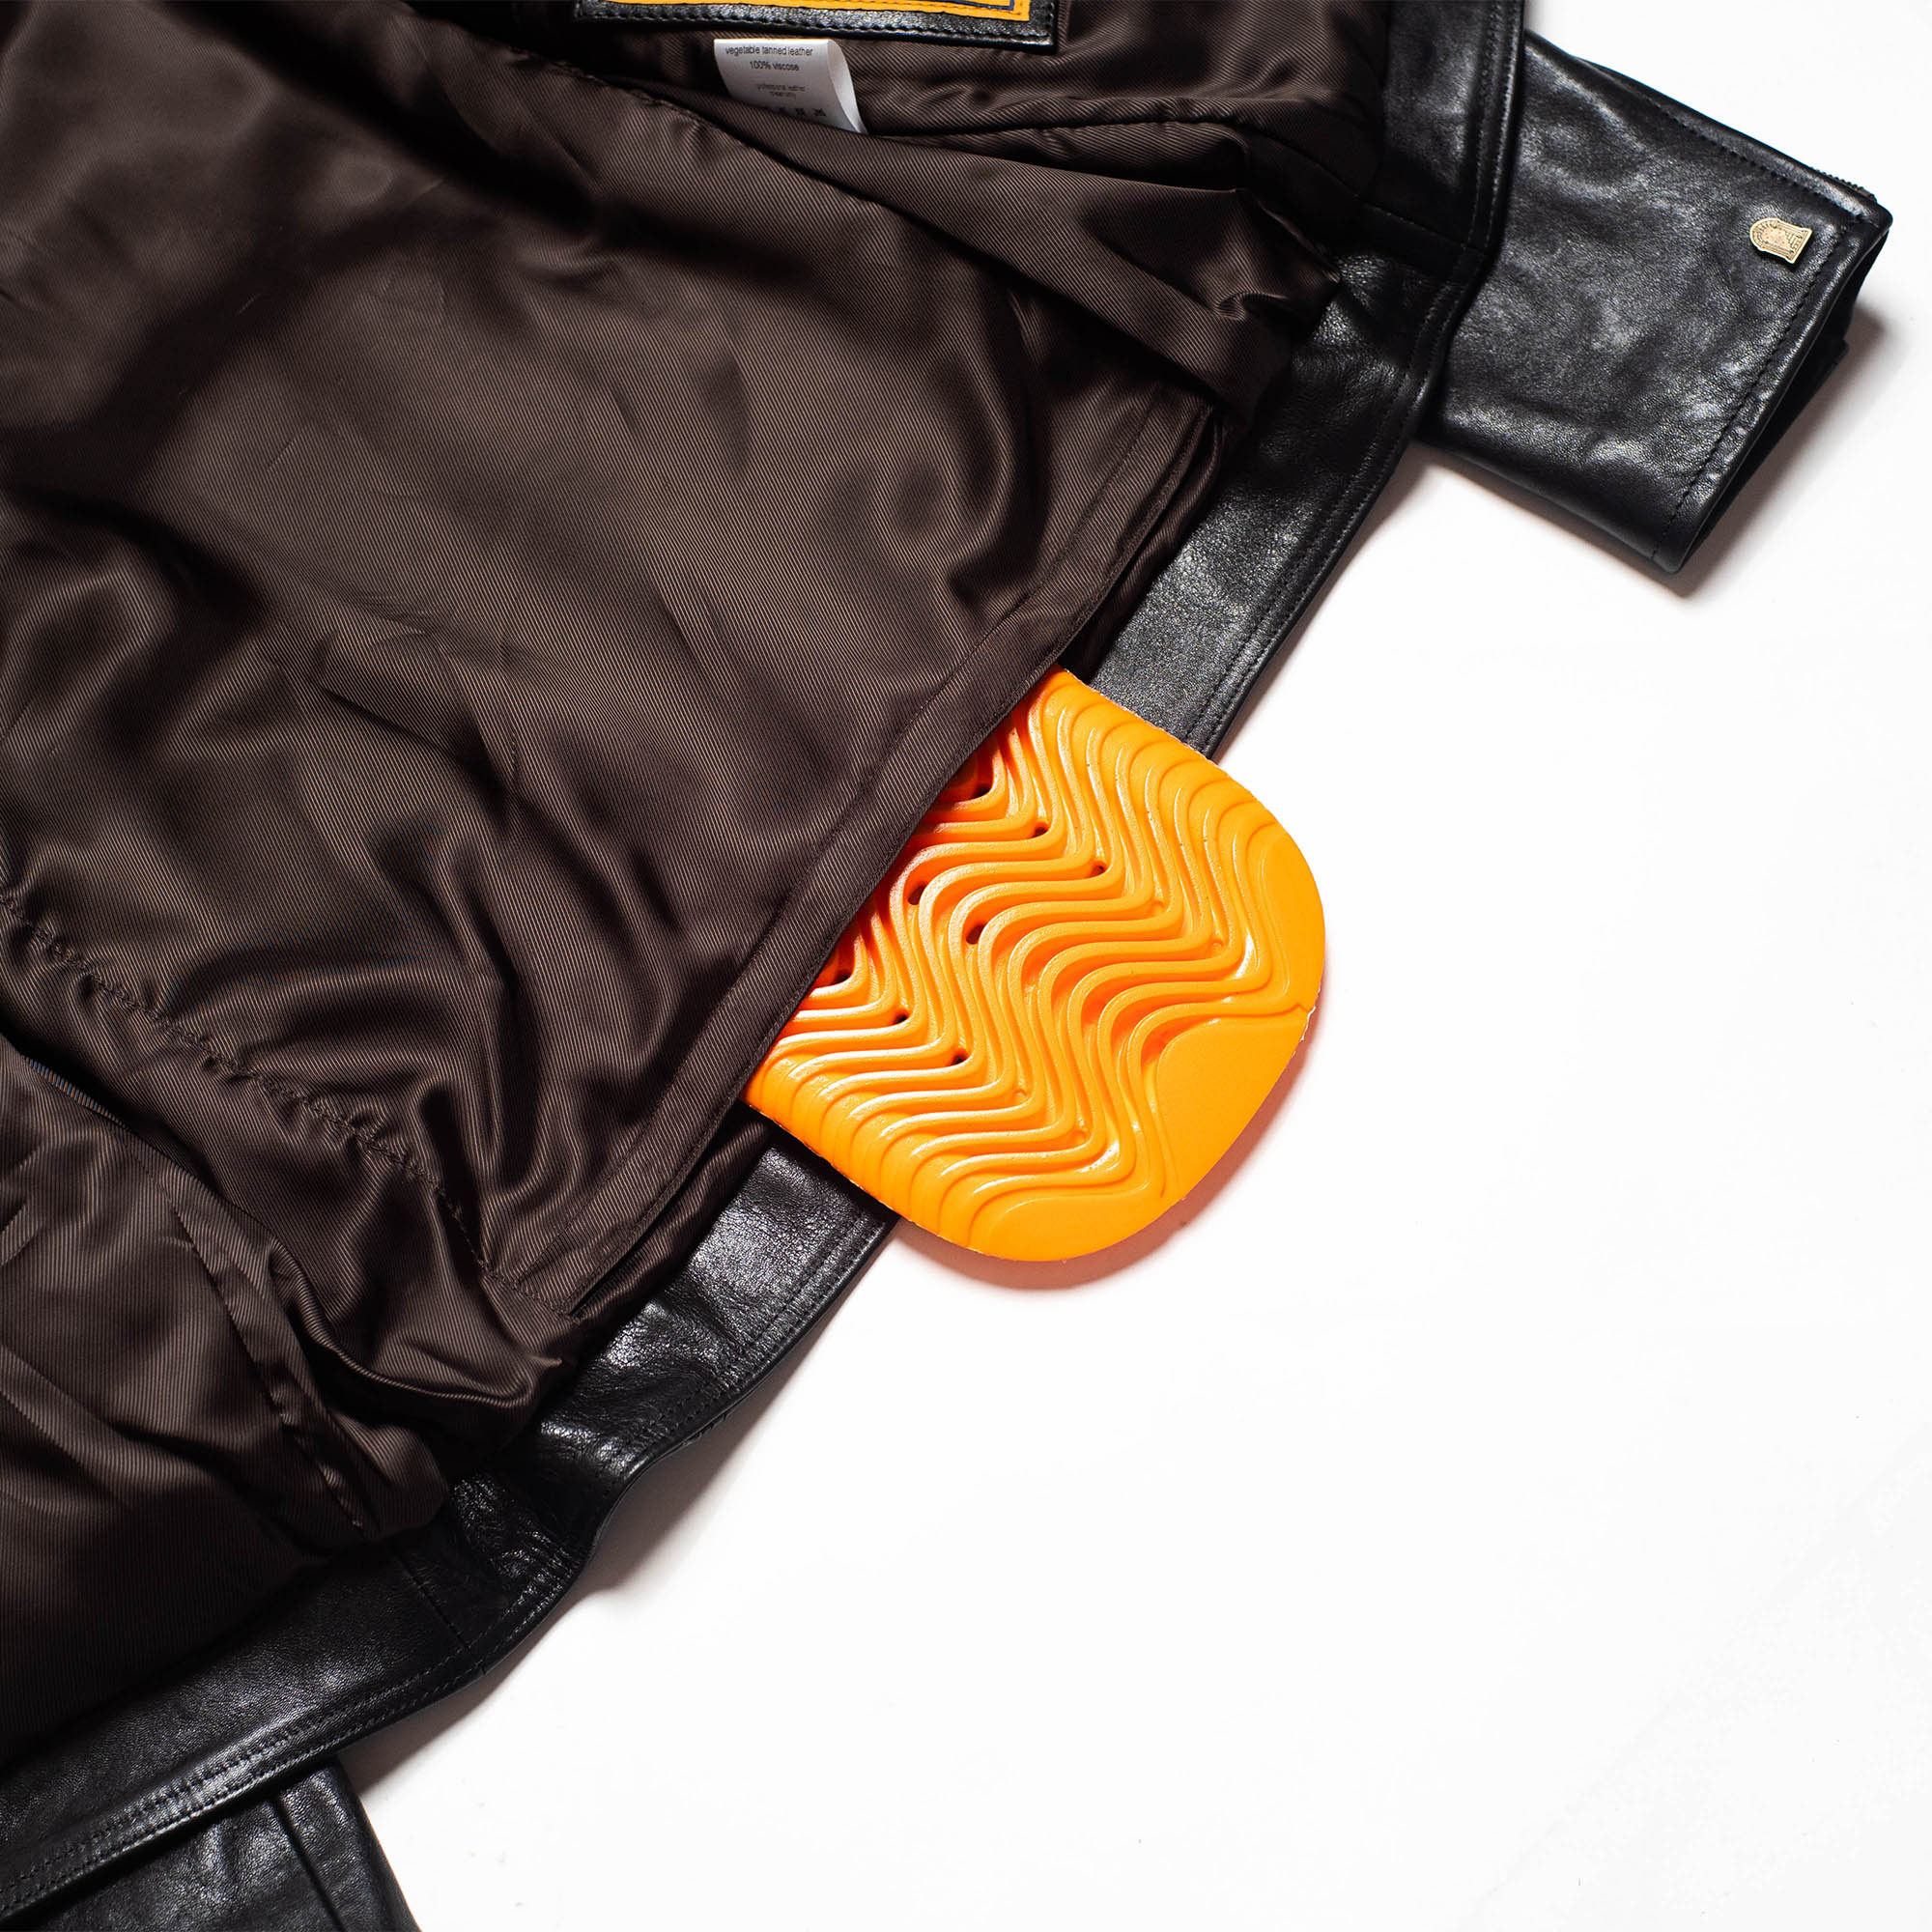 shangri-la-heritage-cafe-racer-black-lambskin-leather-jacket-still-life-back-armor-pocket